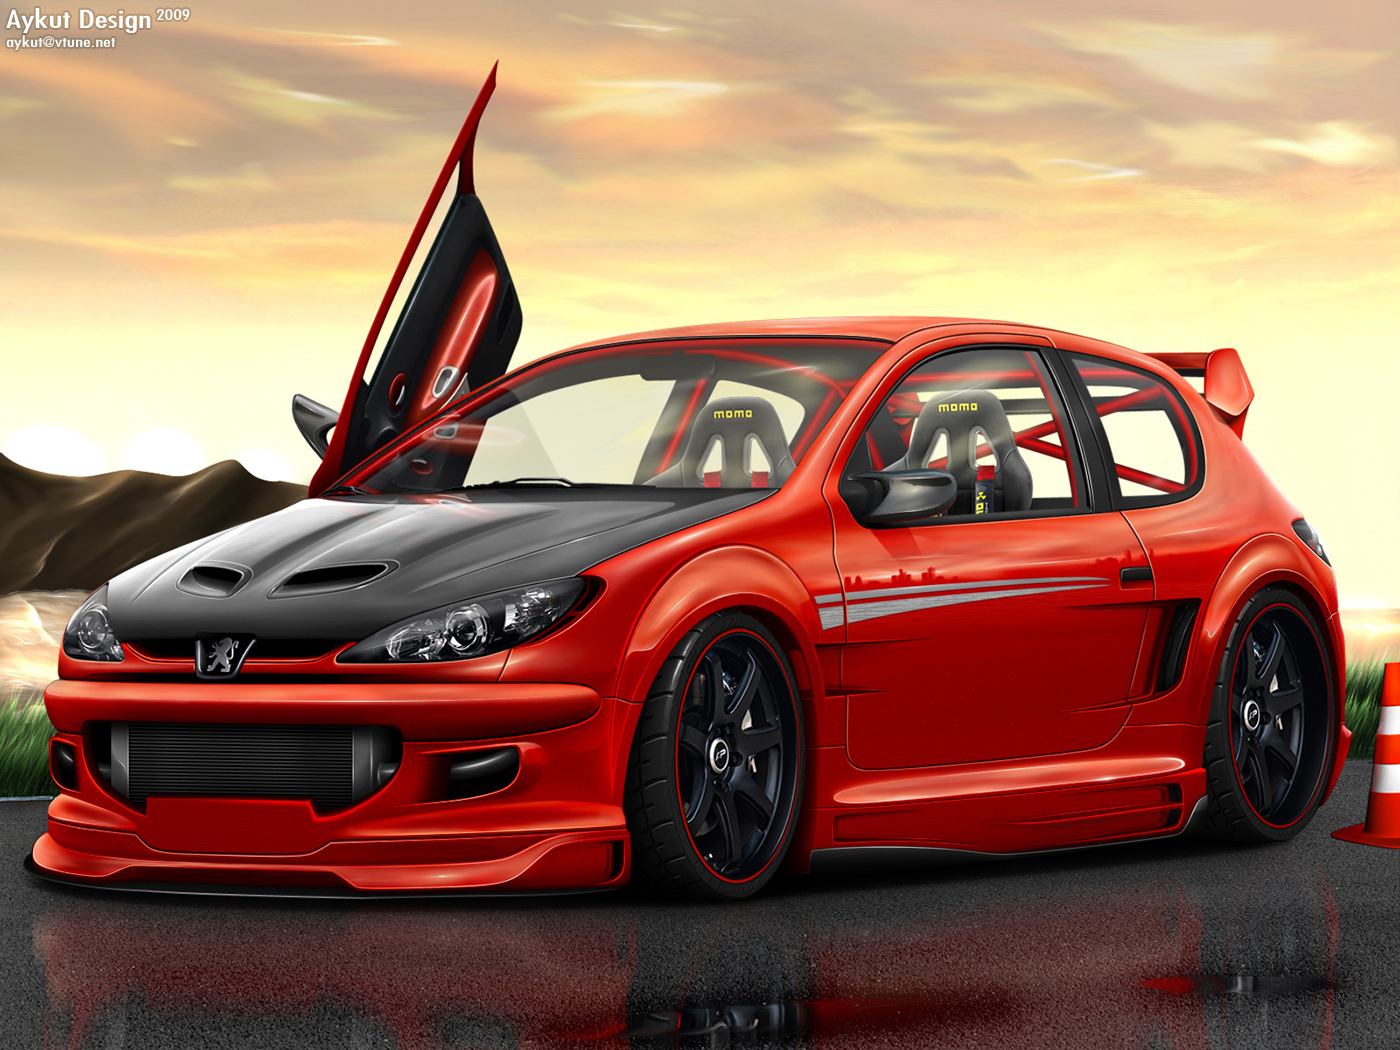 Peugeot Images Peugeot 206 Tuning Hd Wallpaper And